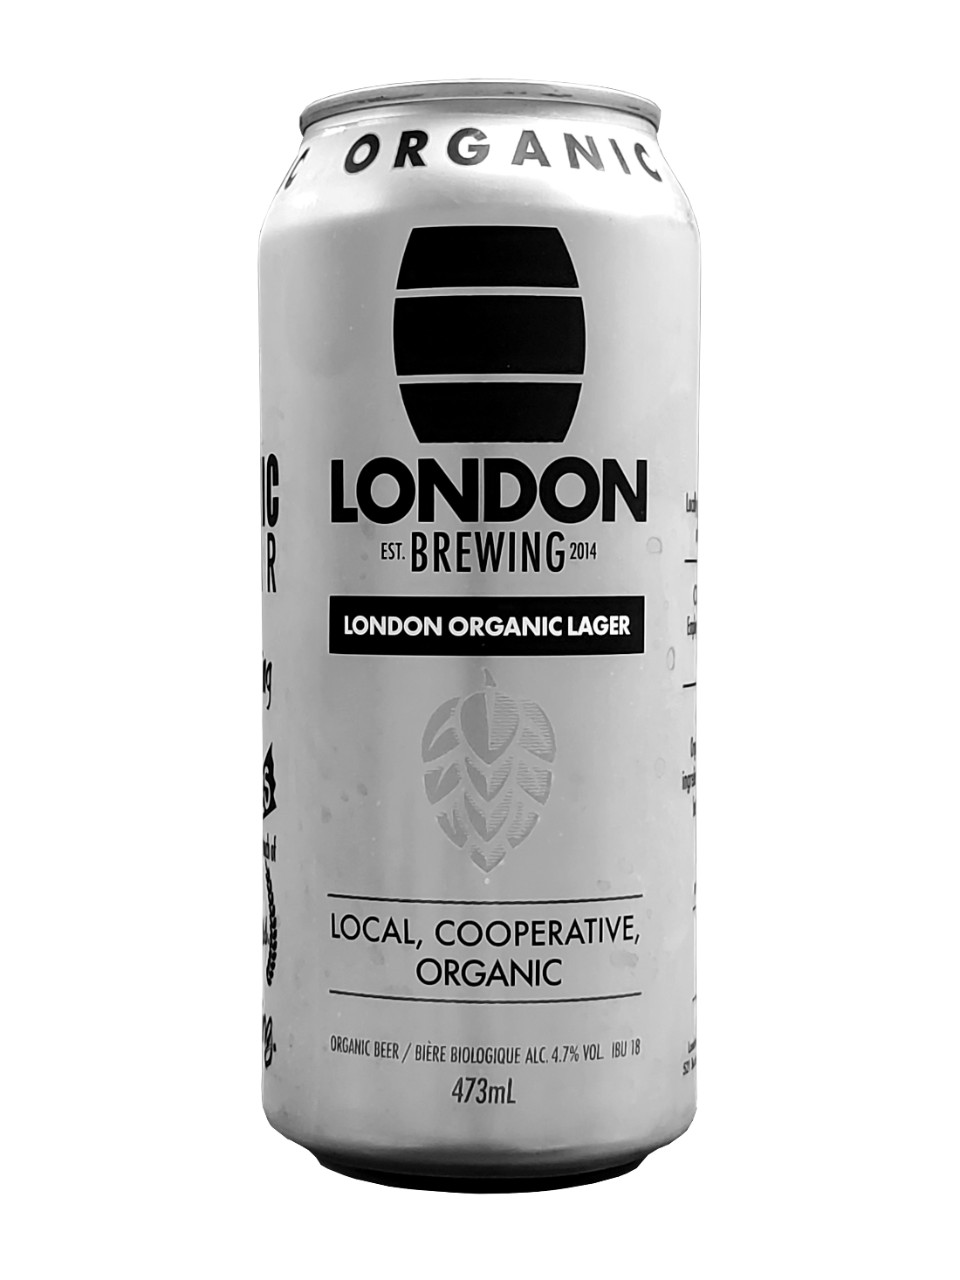 London Brewing Organic Lager from LCBO